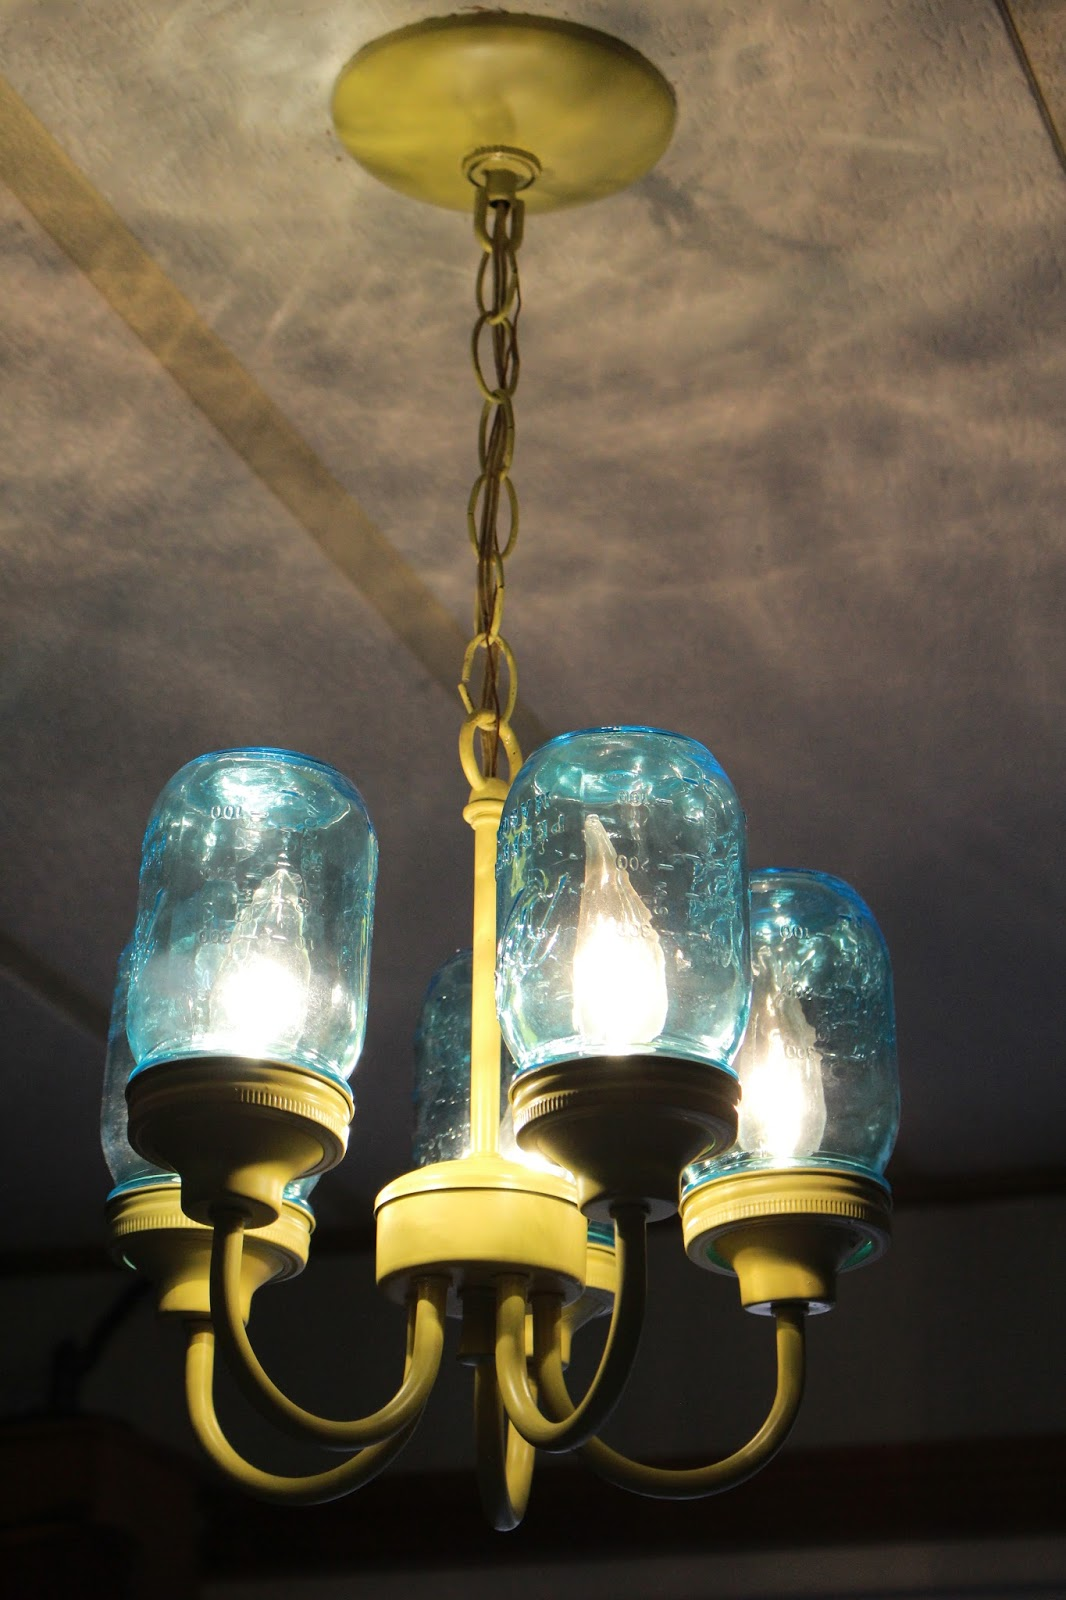 Homestead wannabes up cycled mason jar chandelier fit for a homestead the small mouth lids were the perfect size to grip the chandelier cups from the bottom arubaitofo Choice Image